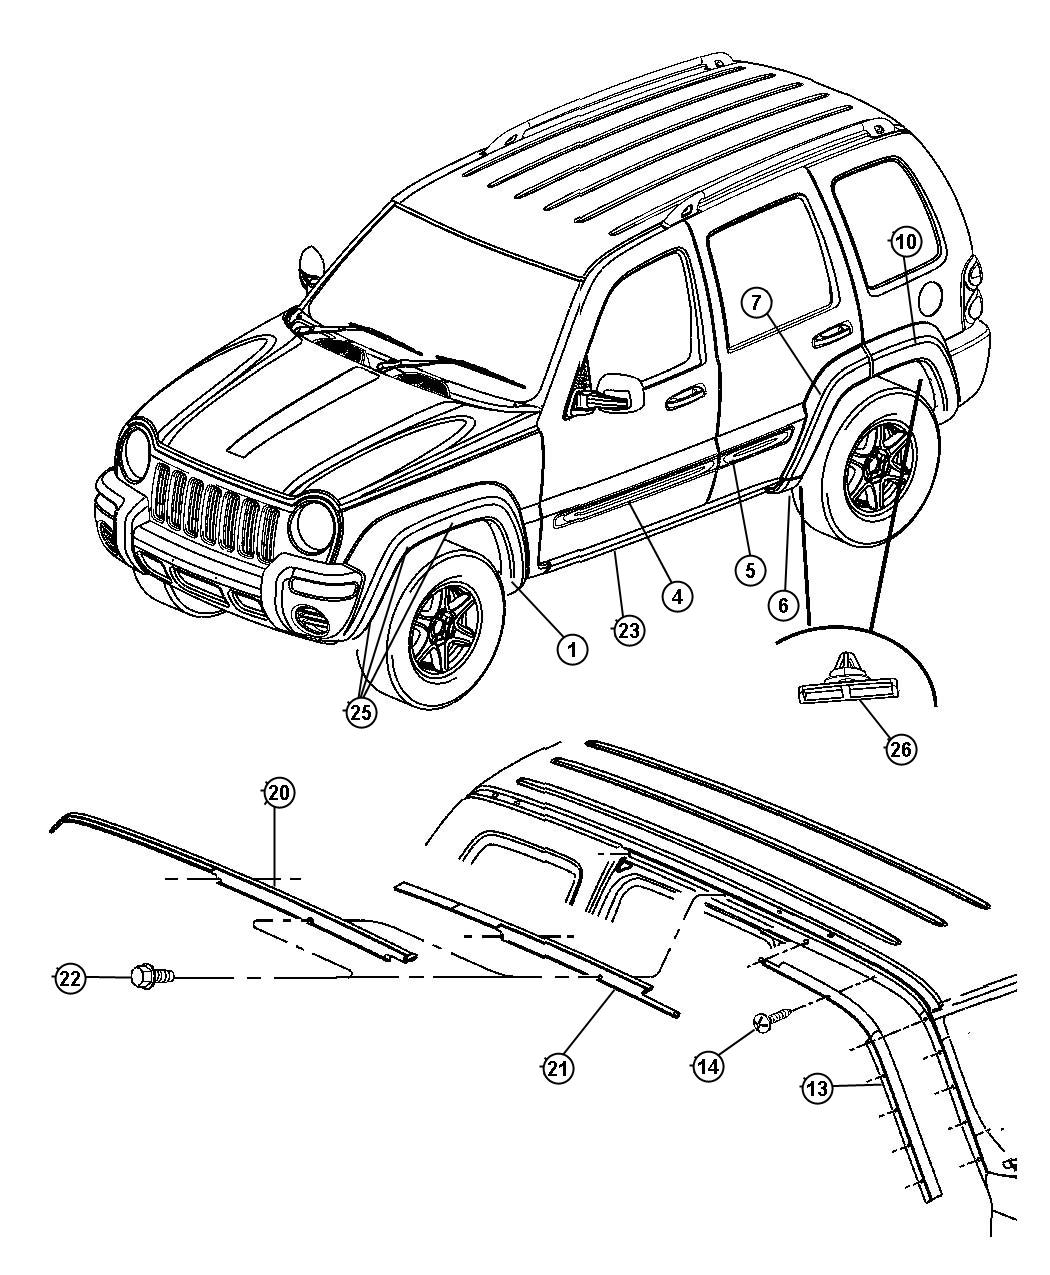 Wiring Diagram: 34 2003 Jeep Liberty Parts Diagram